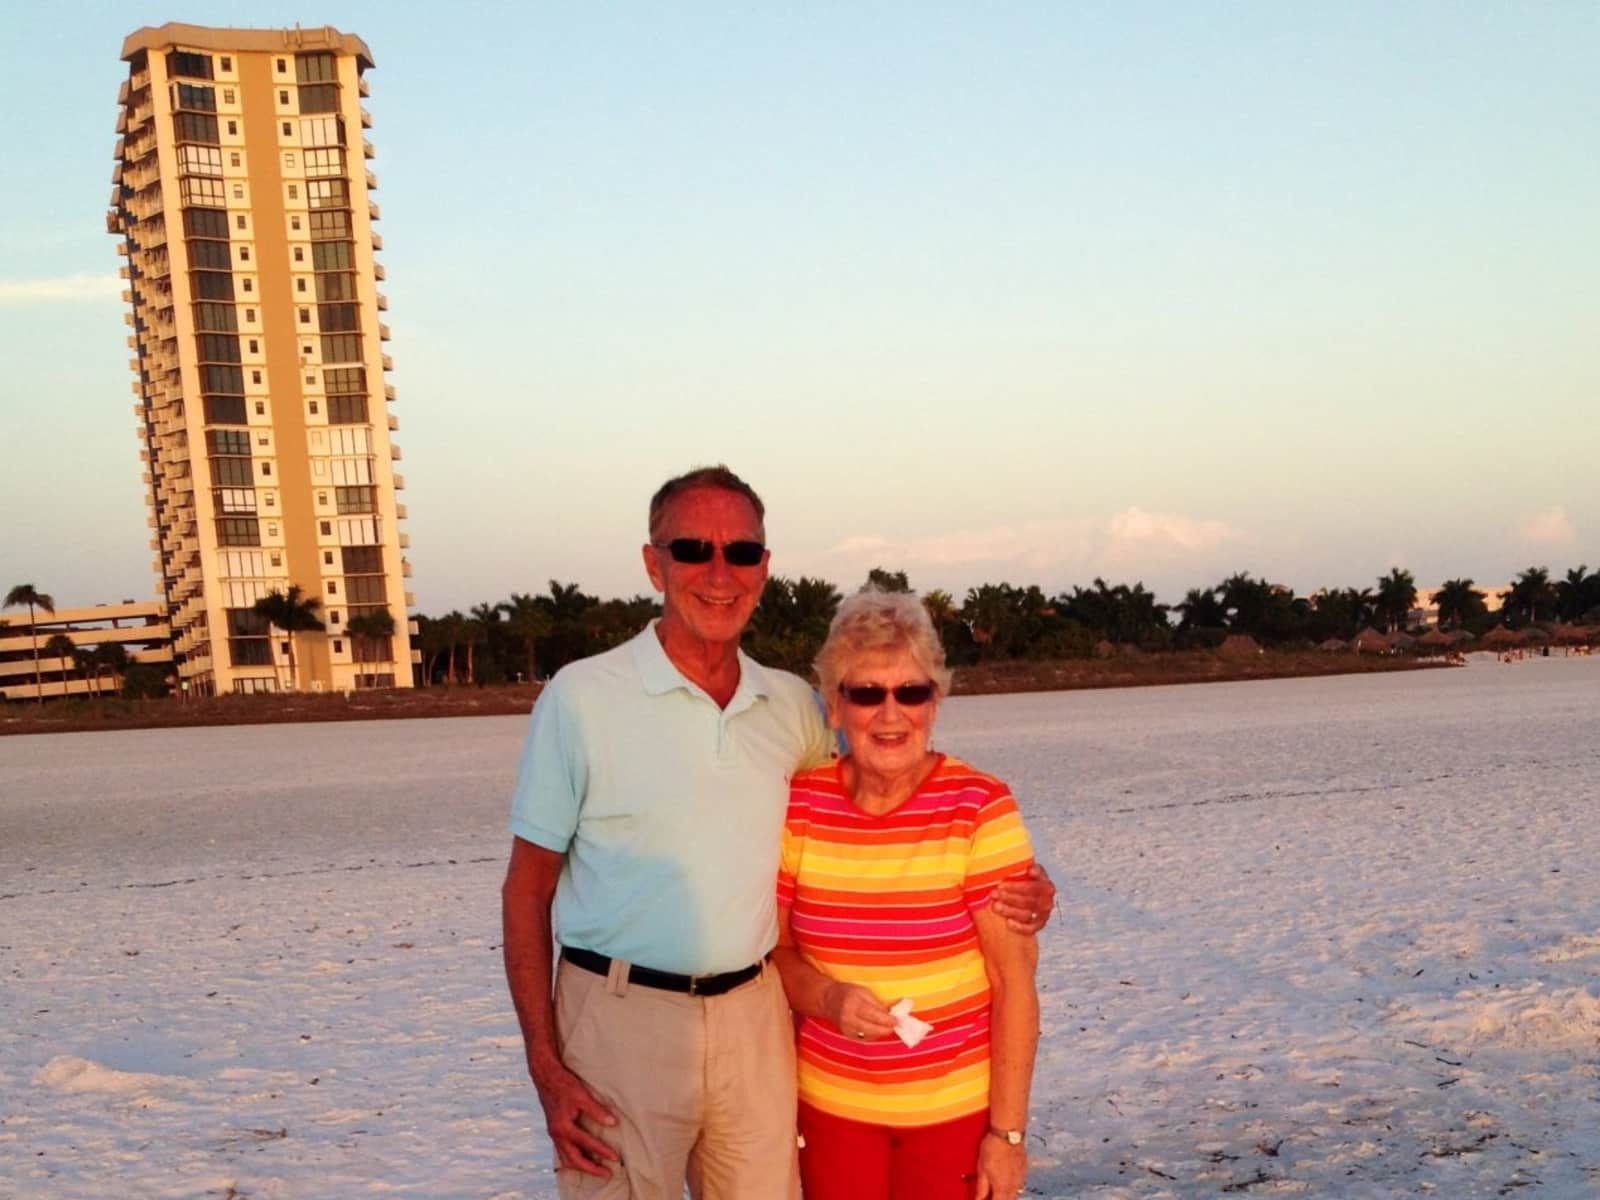 Don & Alyce from Traverse City, Michigan, United States